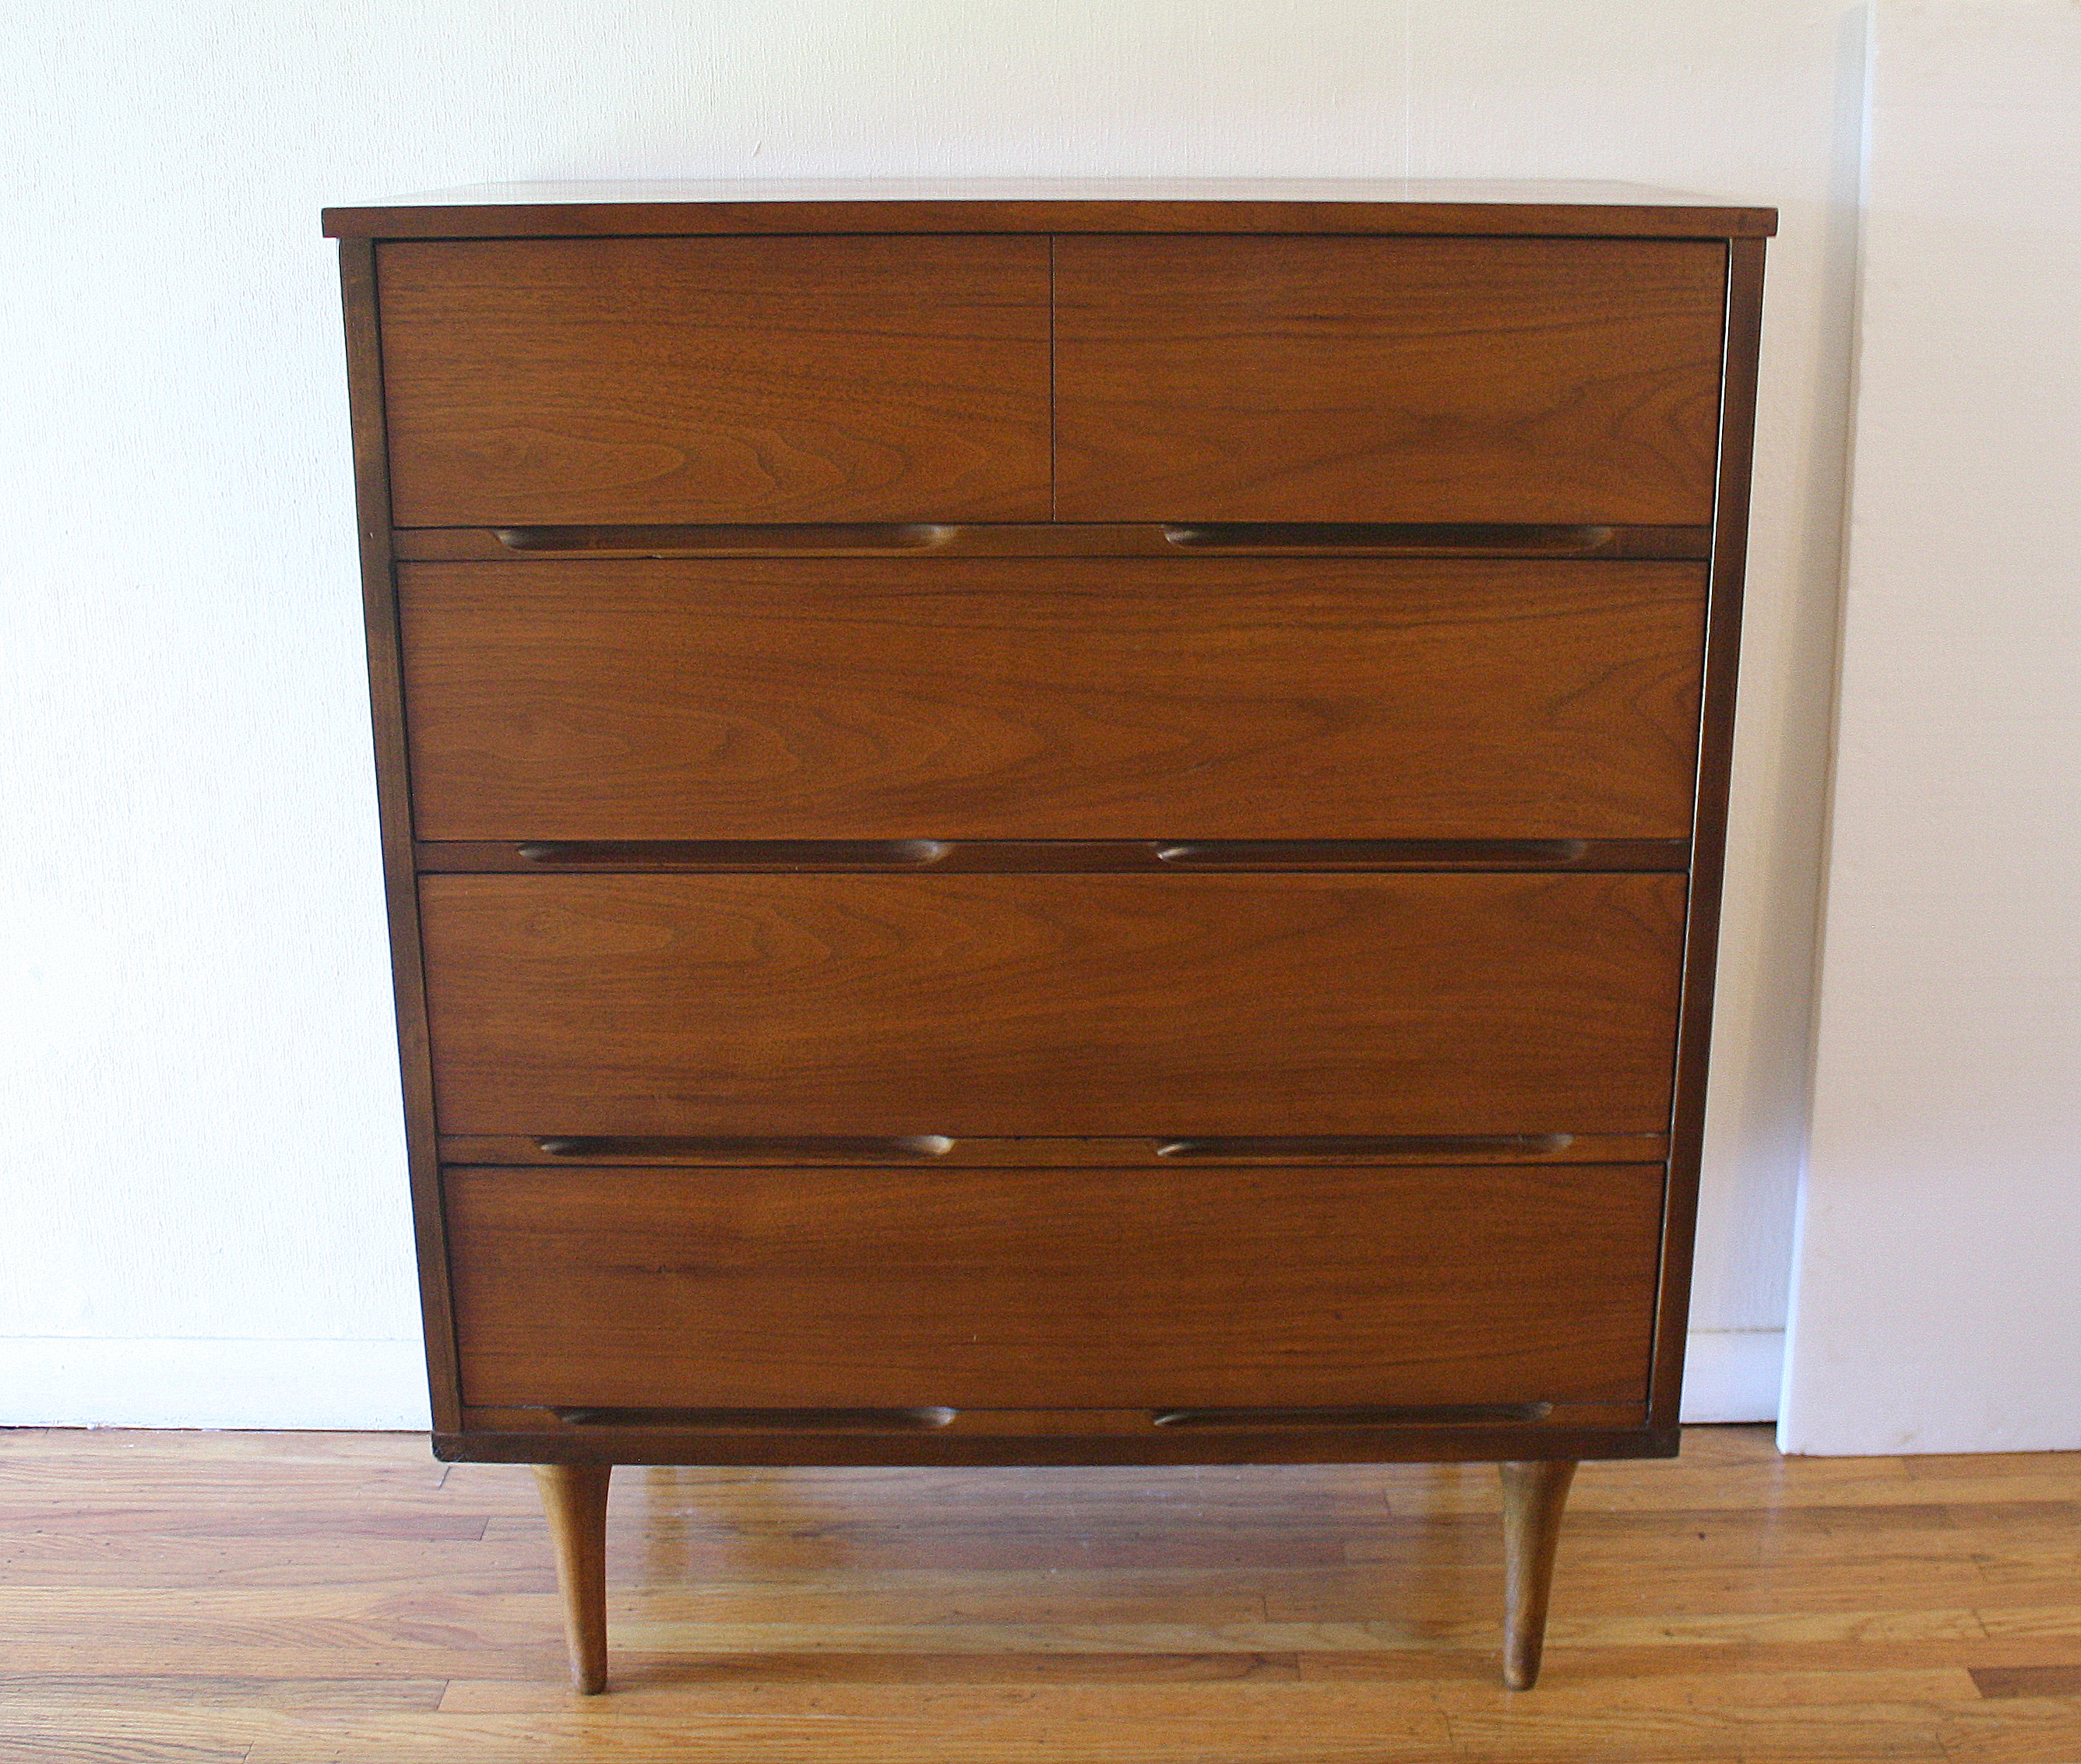 mcm tall streamlined dresser 1.JPG